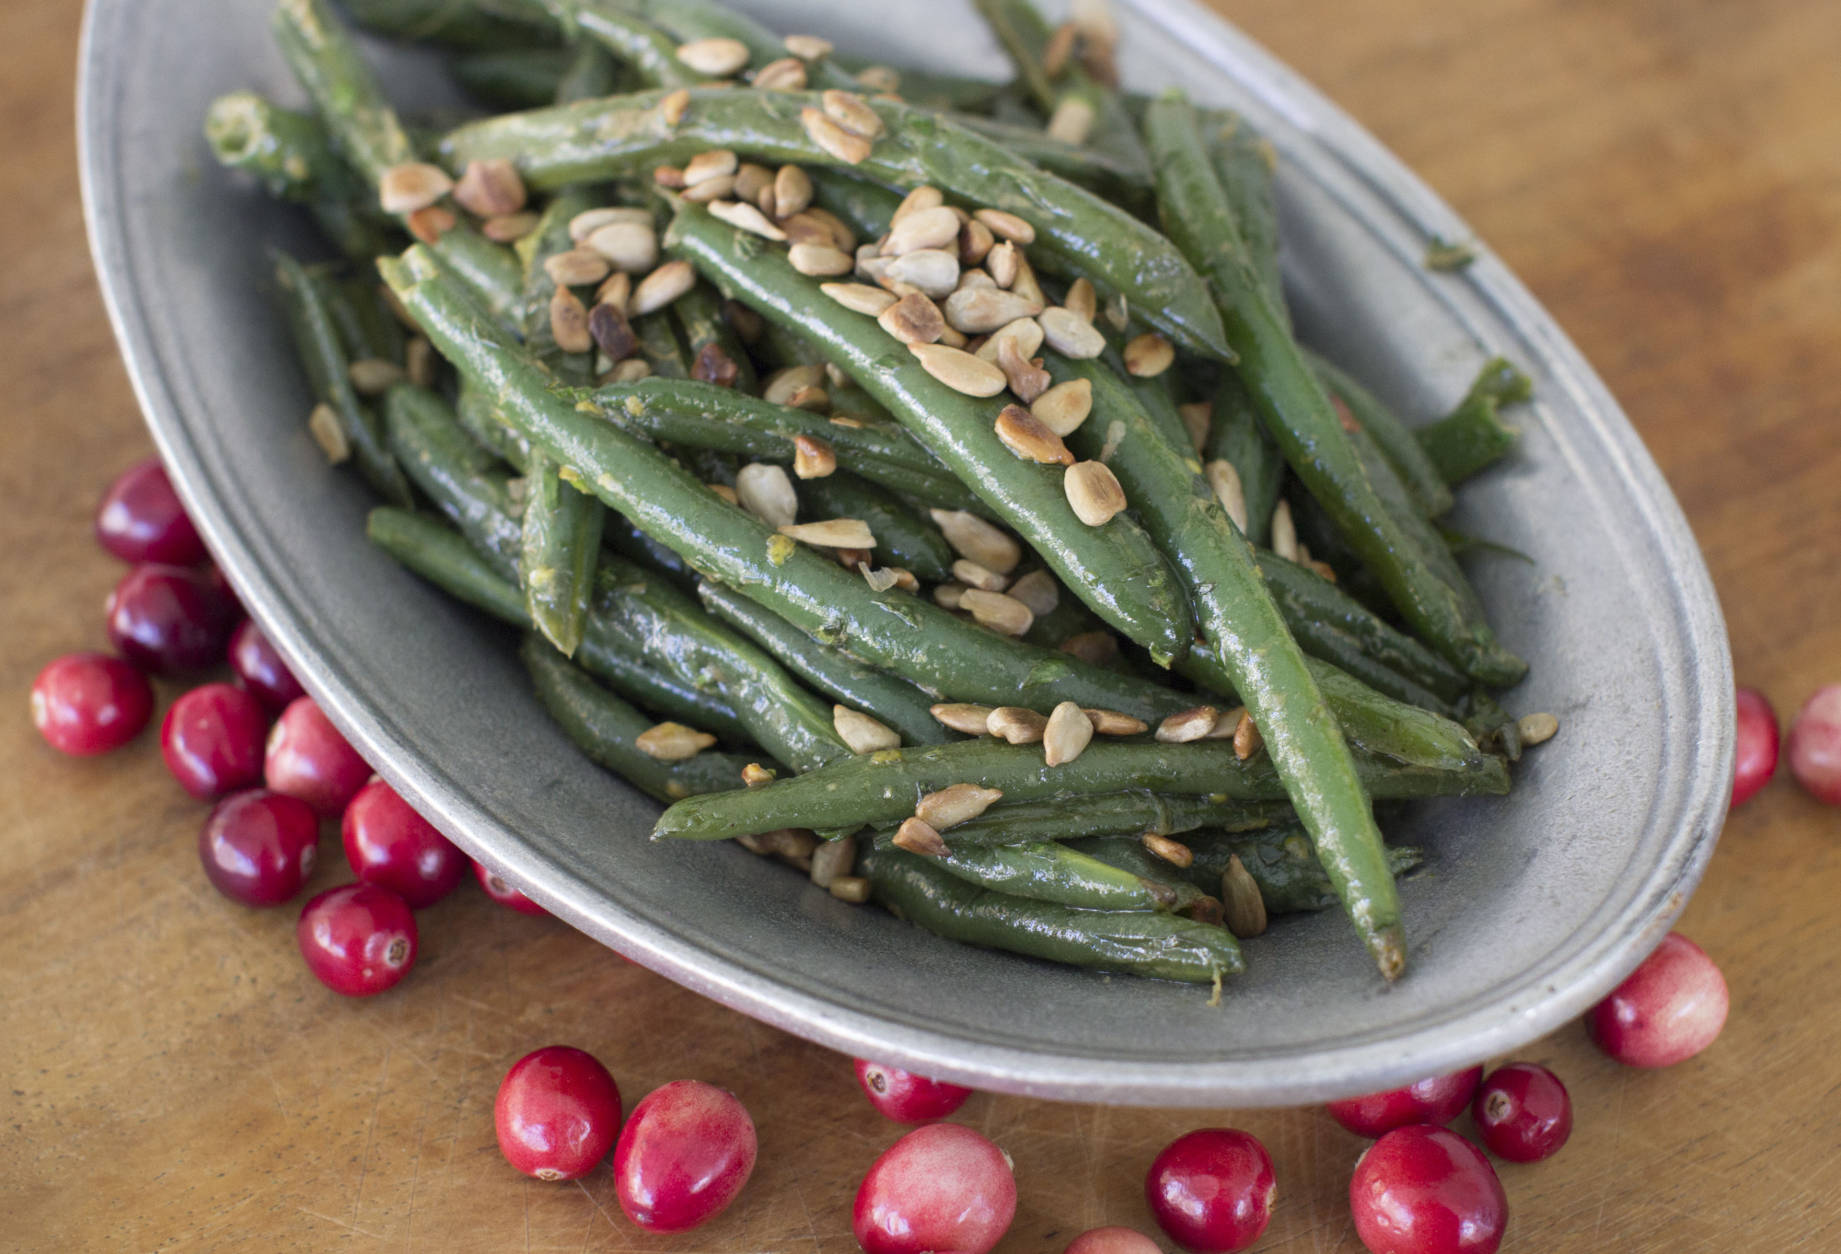 This Oct. 6, 2014 photo shows green beans with tarragon, mustard and sunflower seeds in Concord, N.H. The recipe is simple for skillet green beans bathed in brown butter, then tossed with fresh tarragon, Dijon mustard and lemon zest. (AP Photo/Matthew Mead)